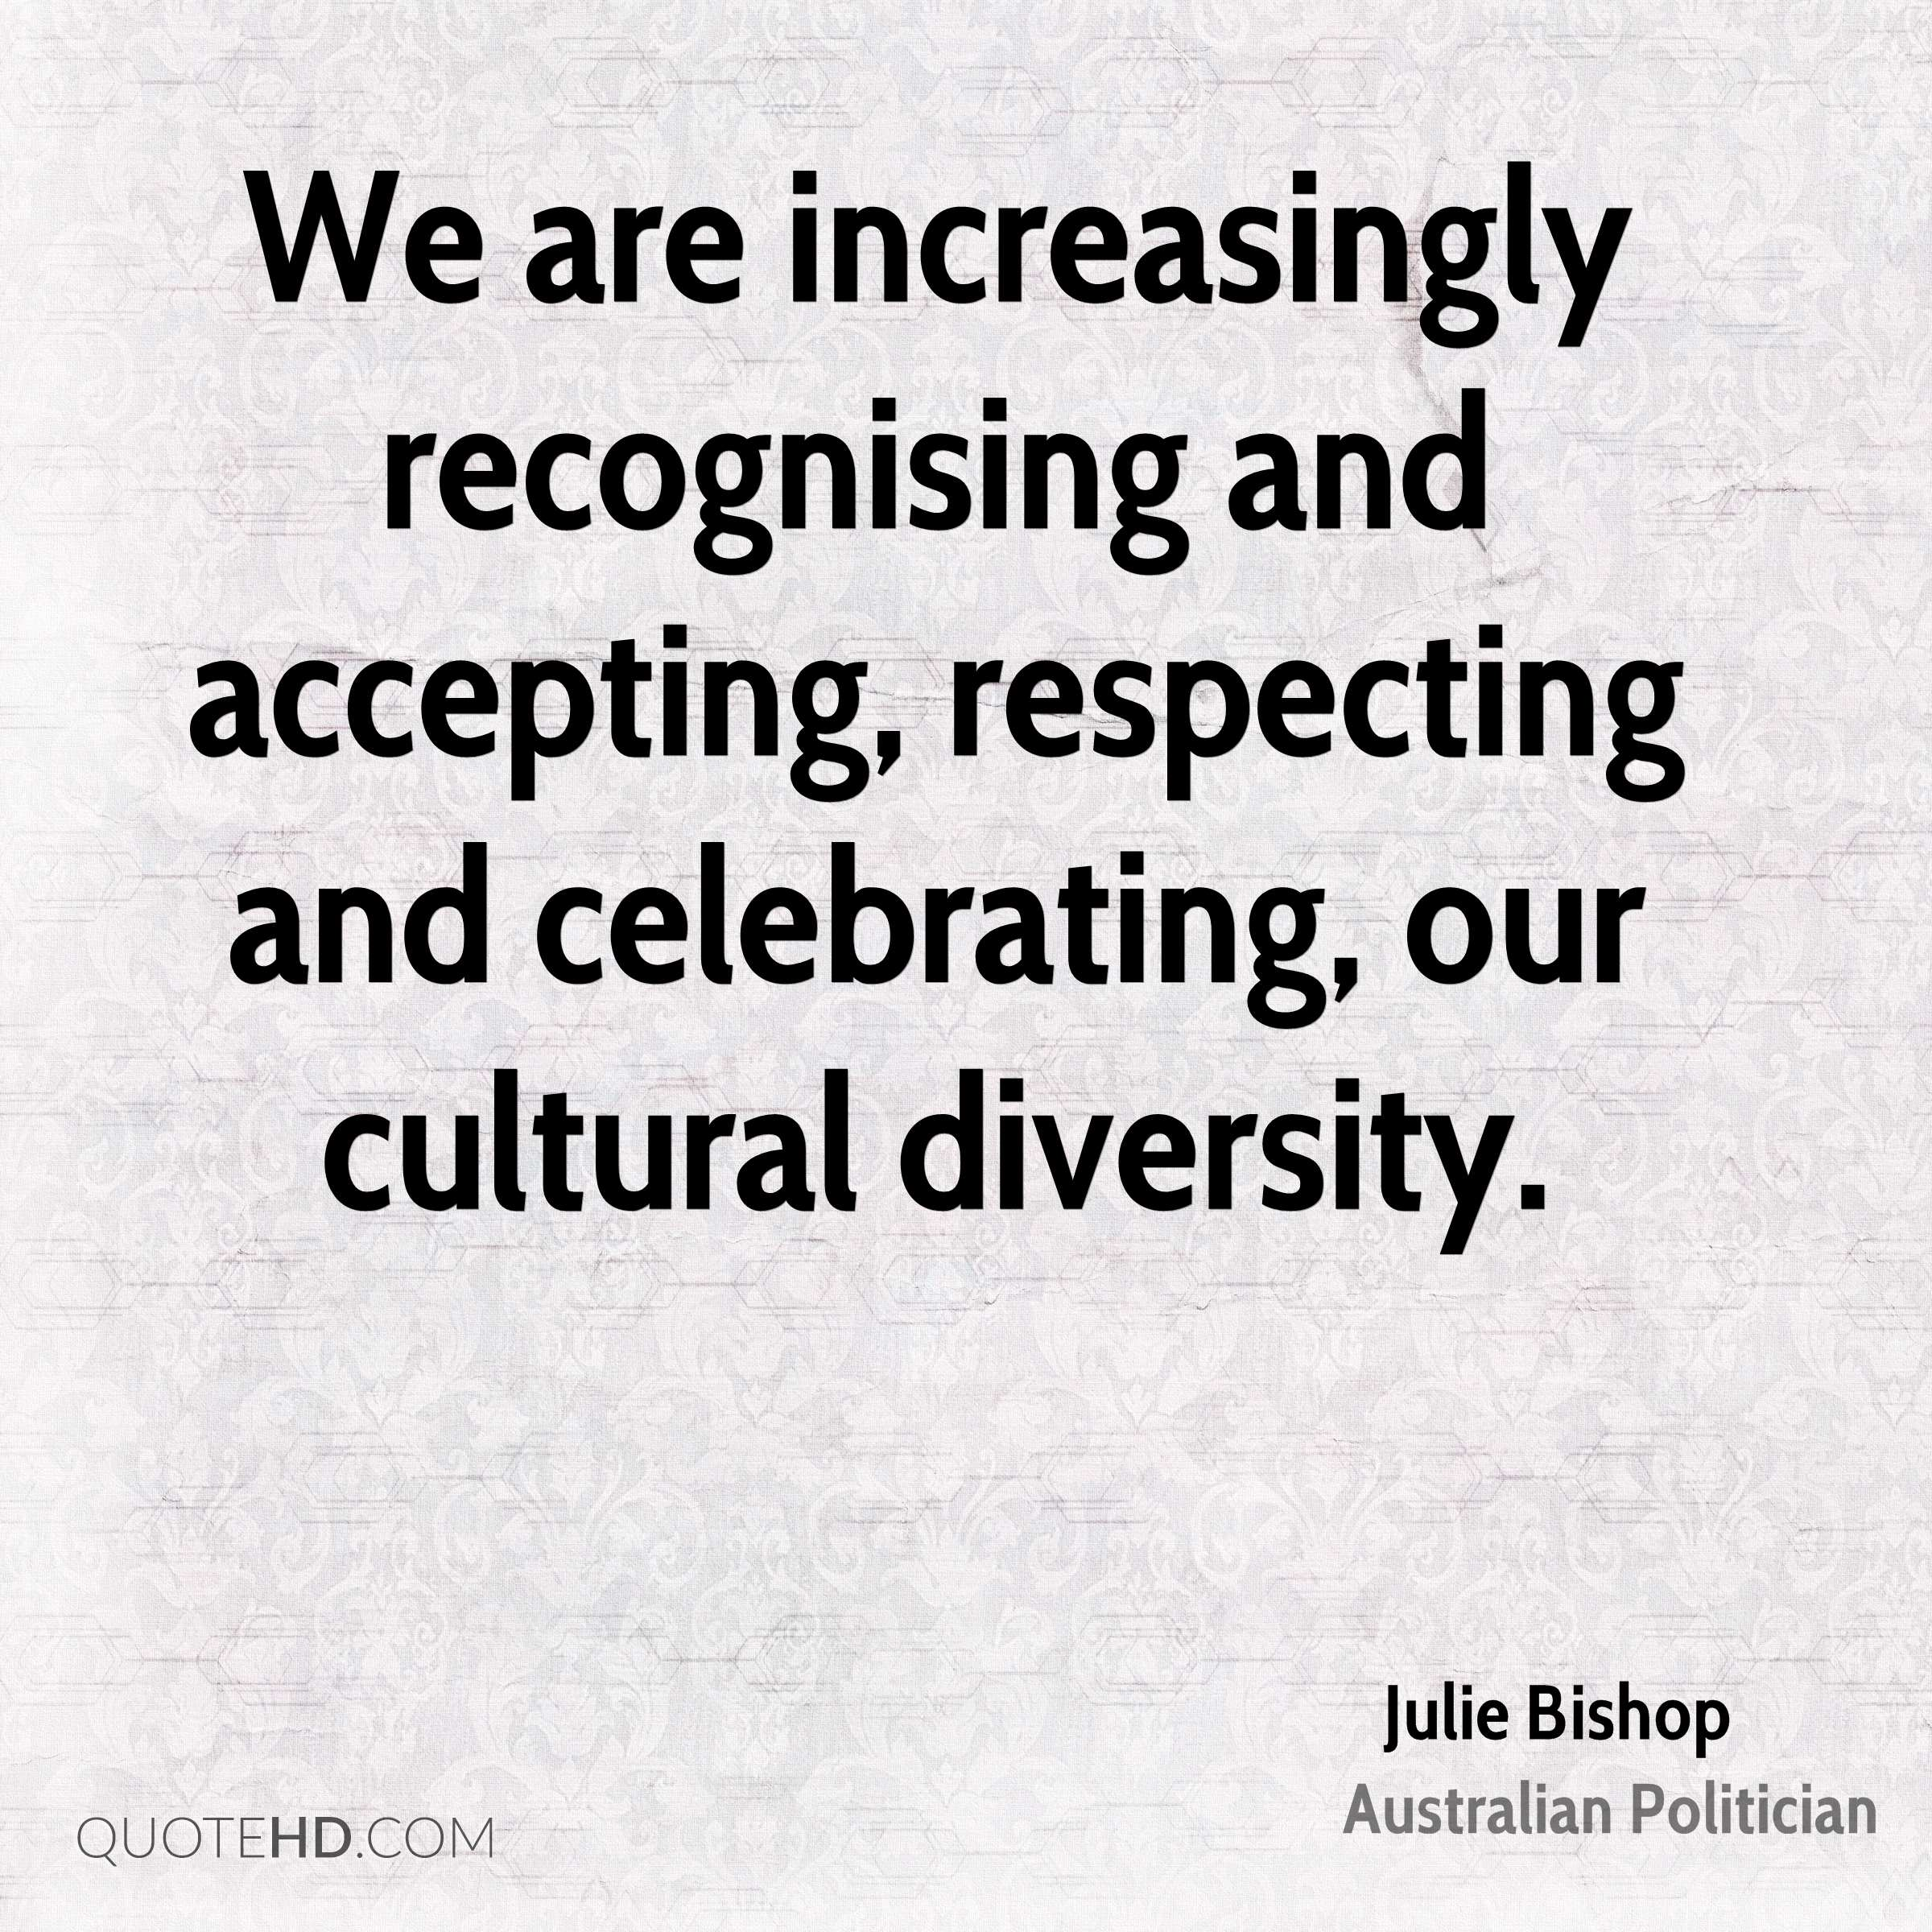 We are increasingly recognising and accepting, respecting and celebrating, our cultural diversity.